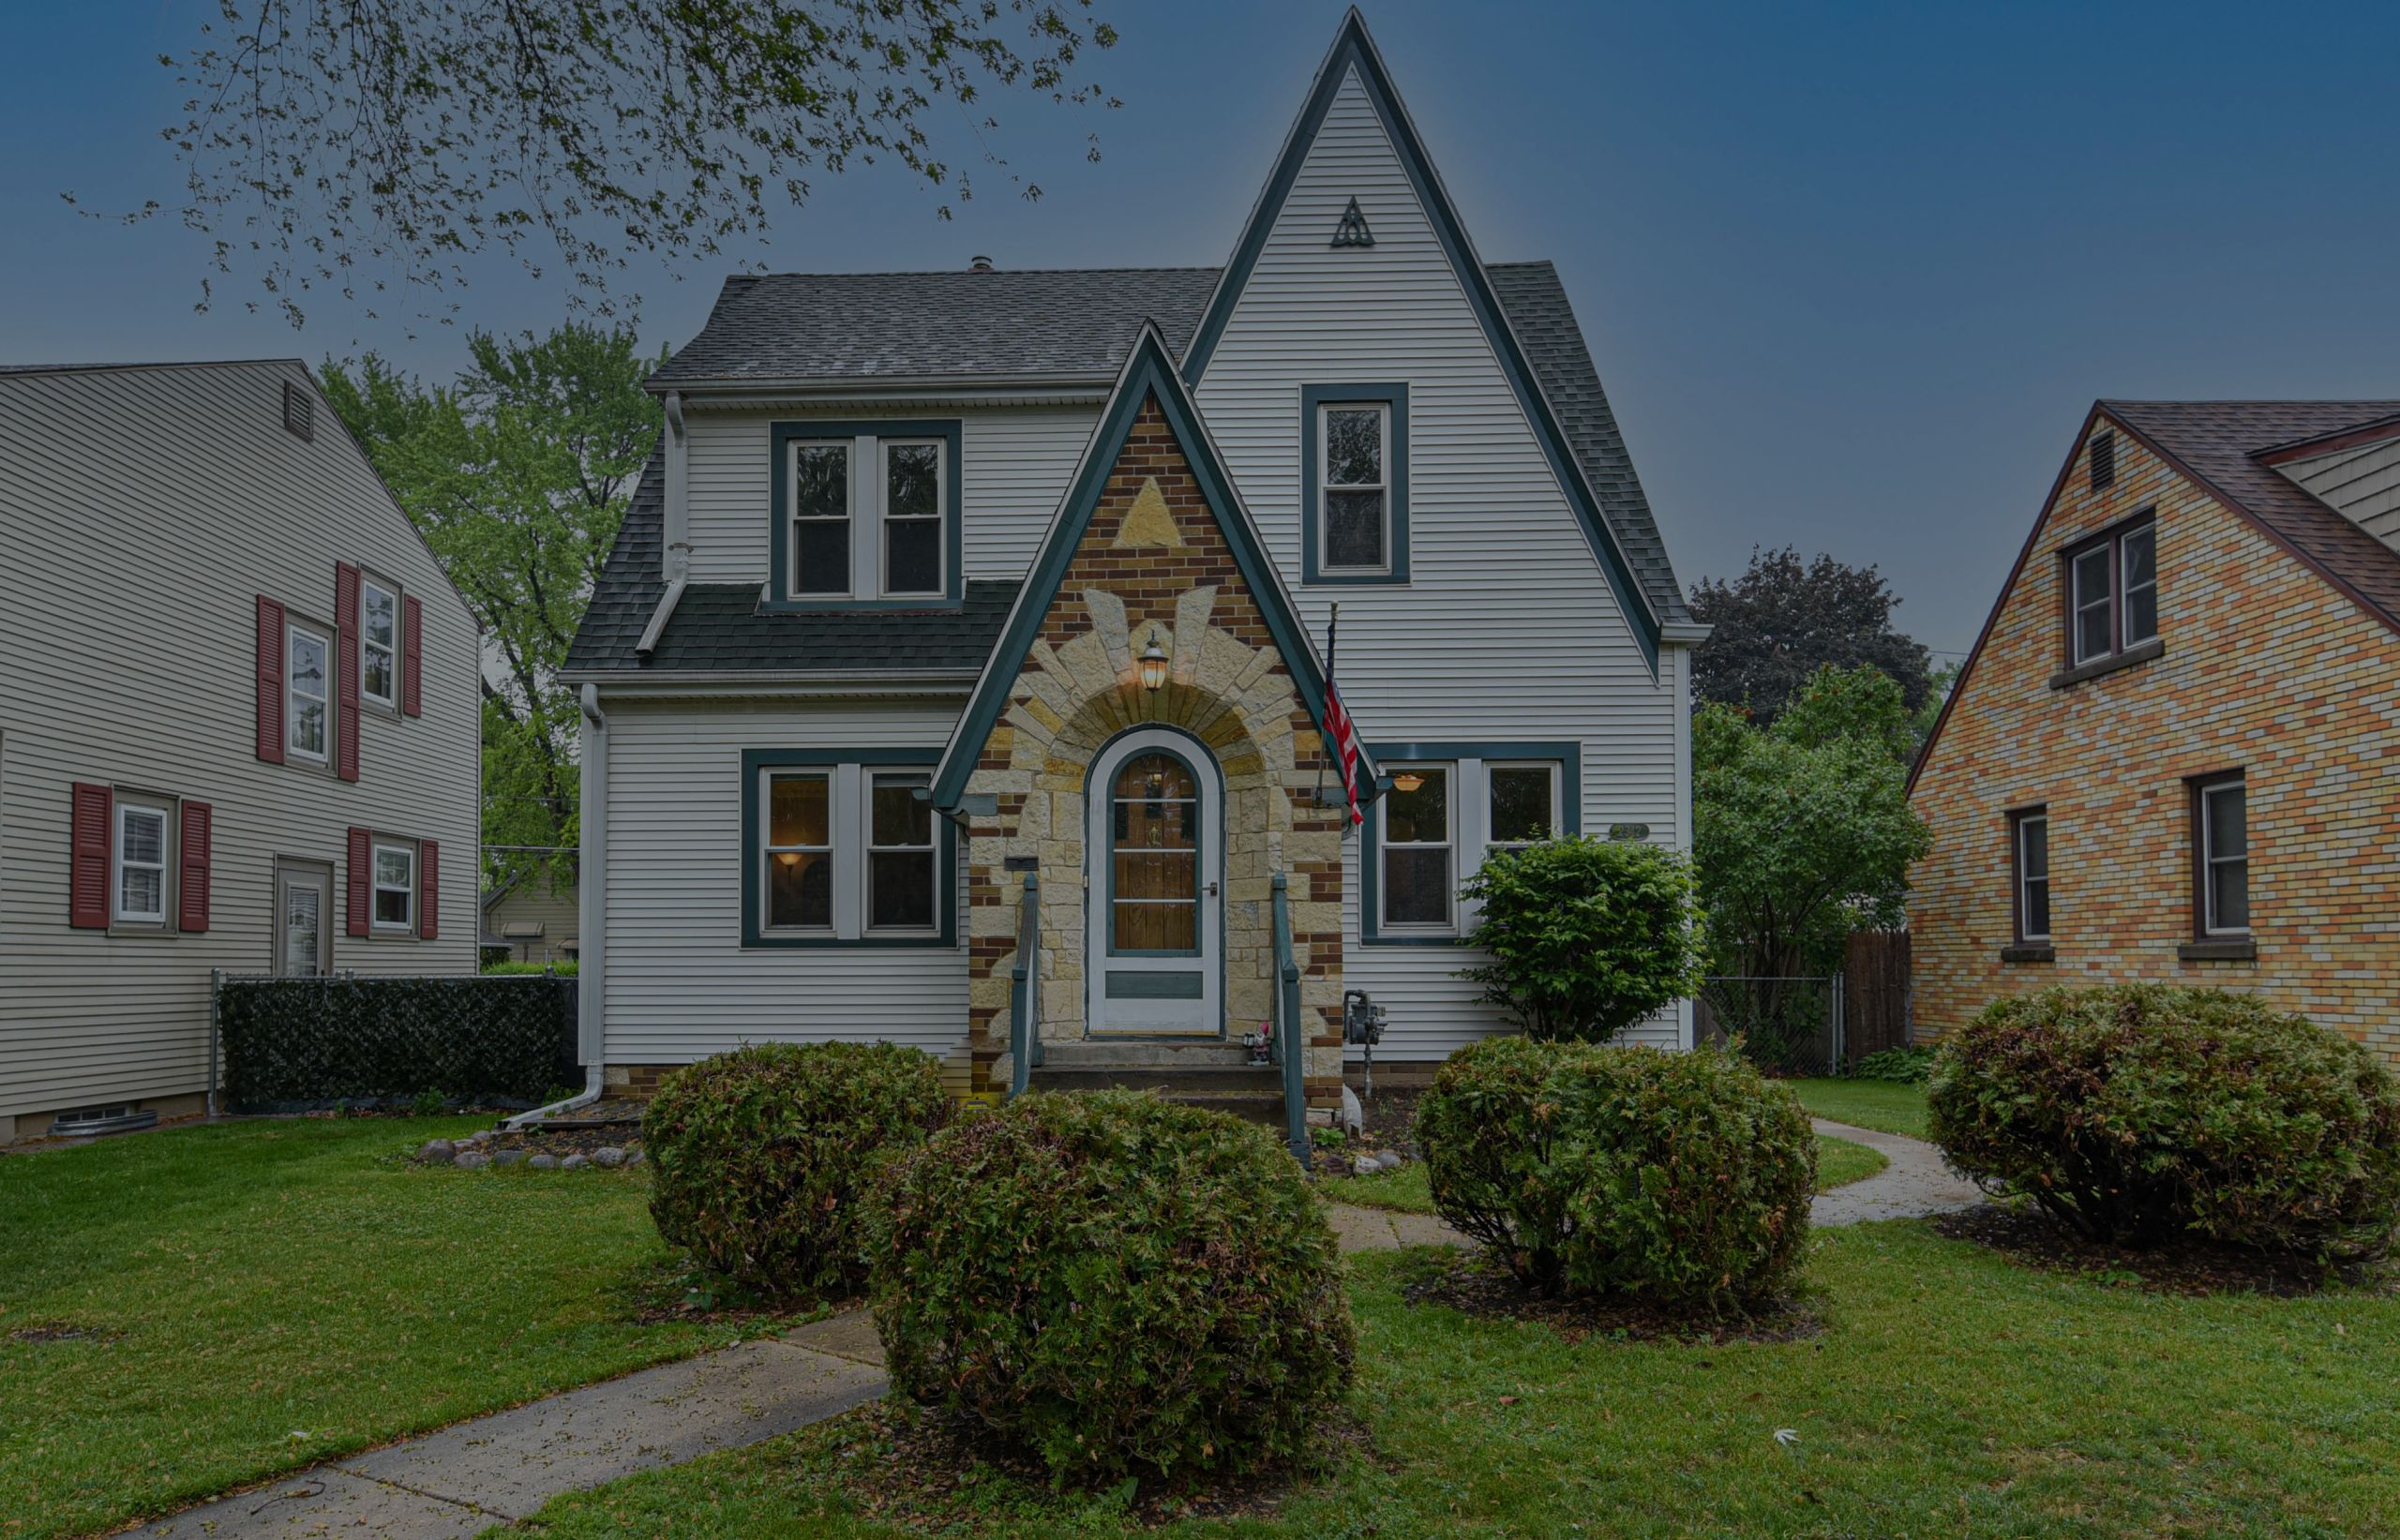 COMING SOON – 2342 S 67th St West Allis, Wisconsin 53219